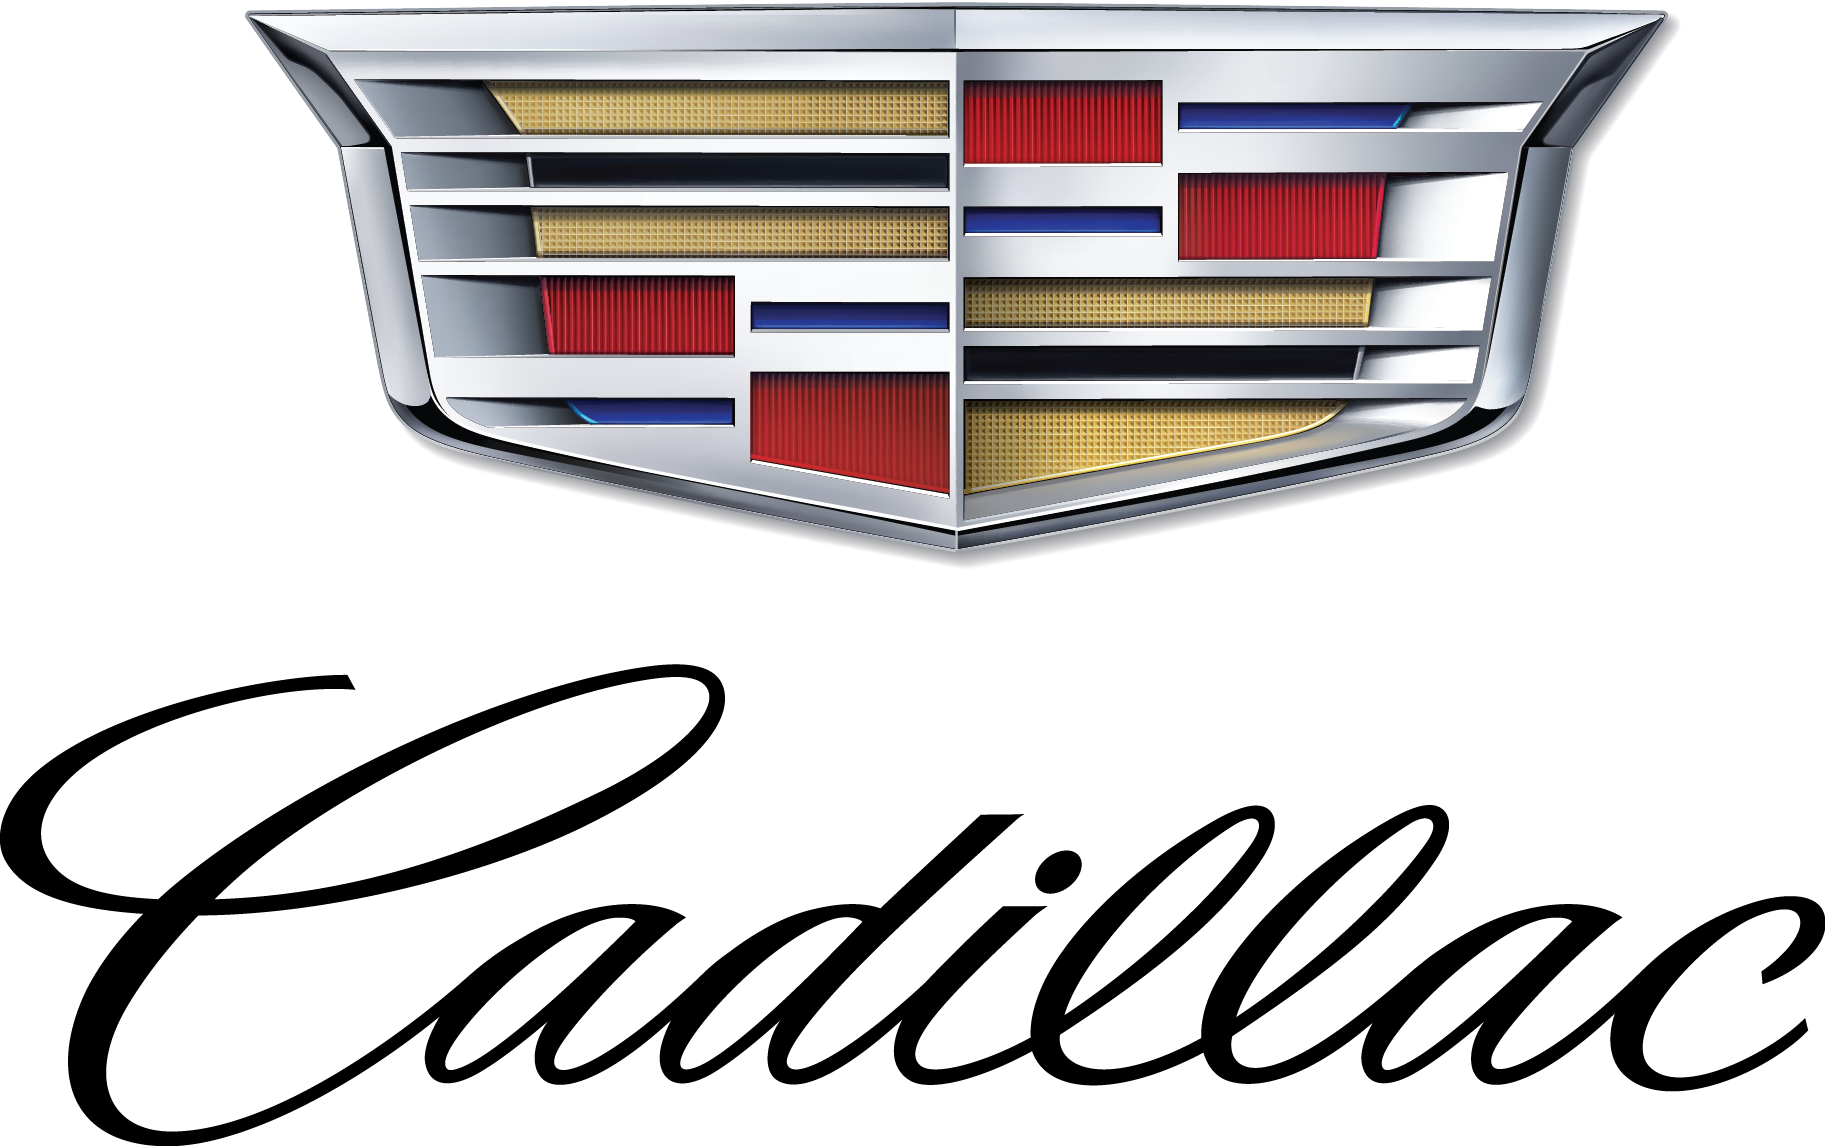 Gauthier cadillac buick gmc vehicles for sale in